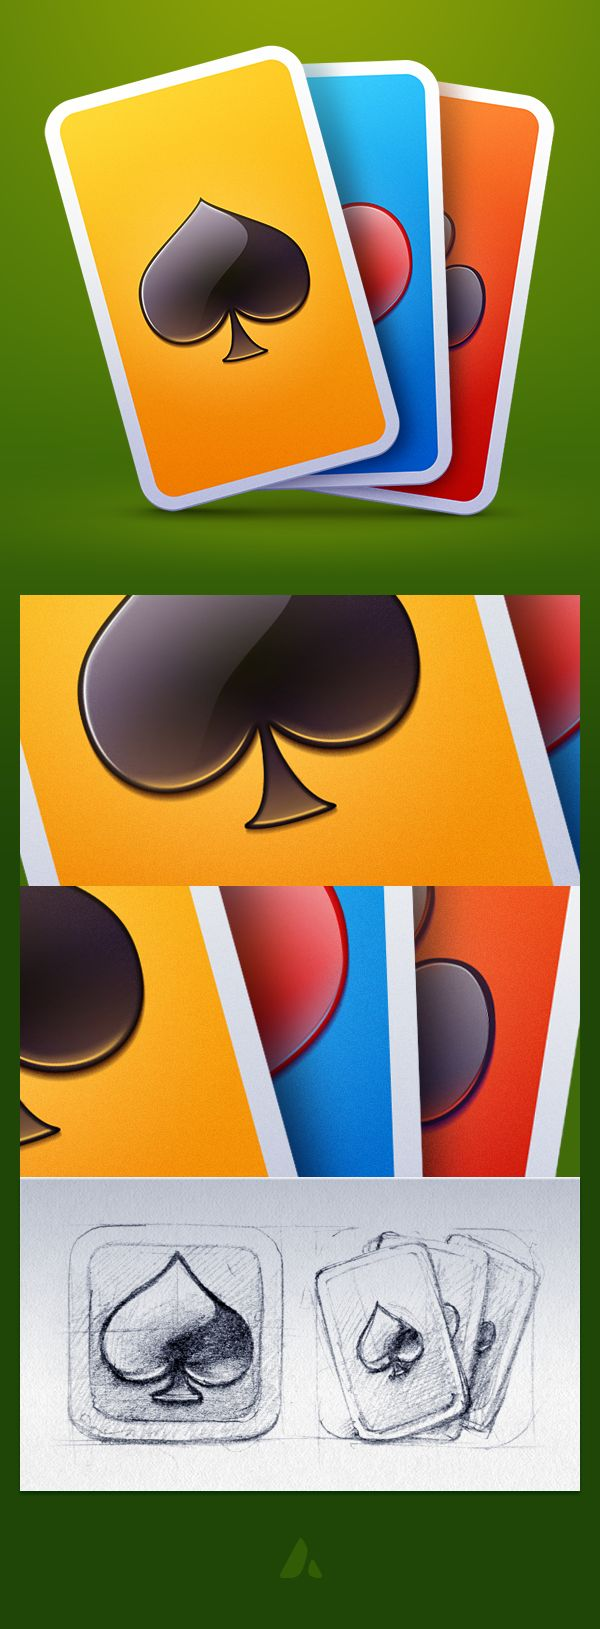 Solitaire icon on Behance